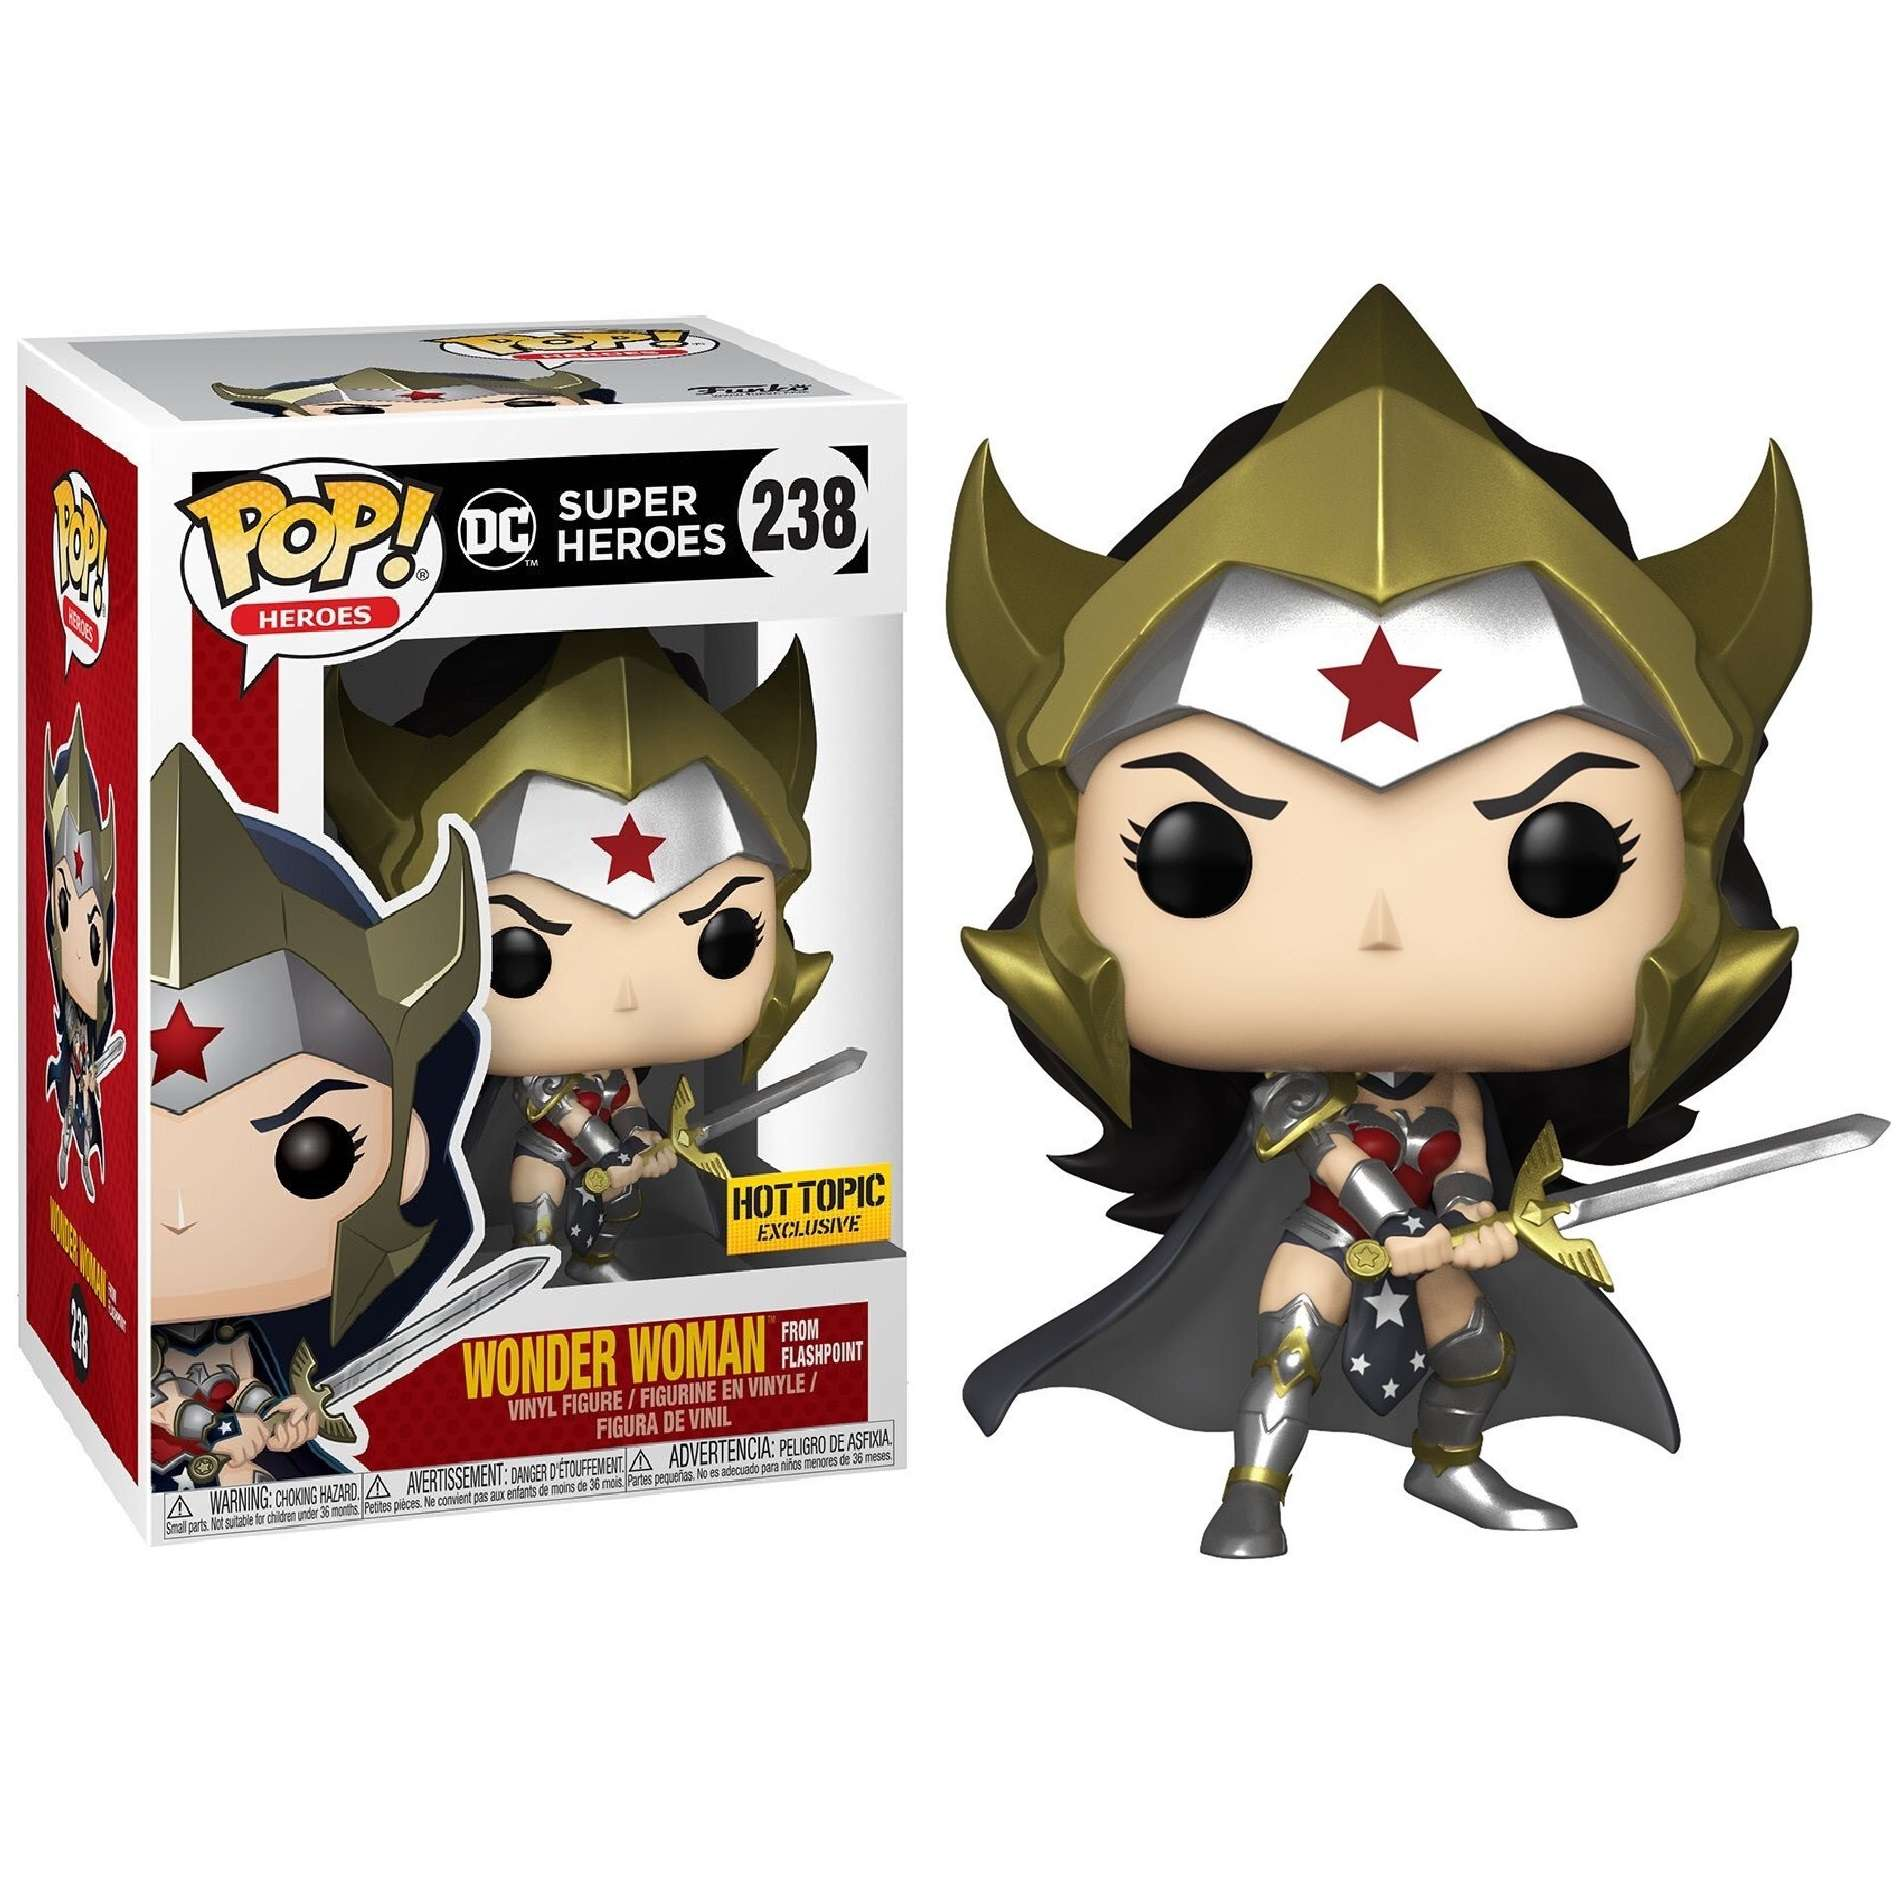 POP!: DC Comics - Wonder Woman from Flashpoint (Hot Topic Exclusive) Photo